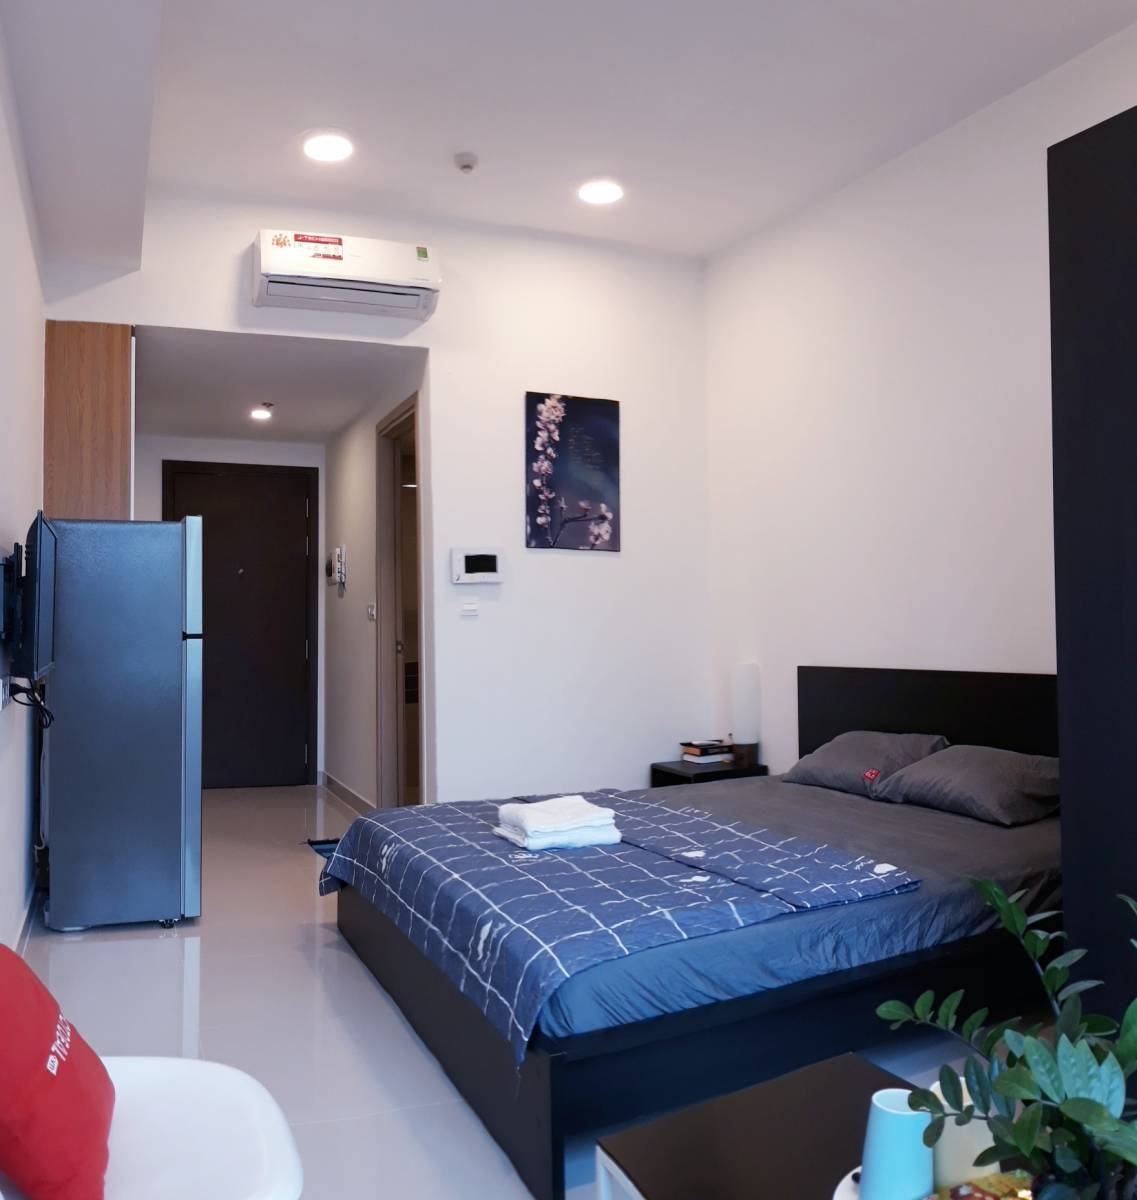 River Gate Apartment, Thanh pho Ho Chi Minh, Viet Nam, preferred site for booking vacations in Thanh pho Ho Chi Minh